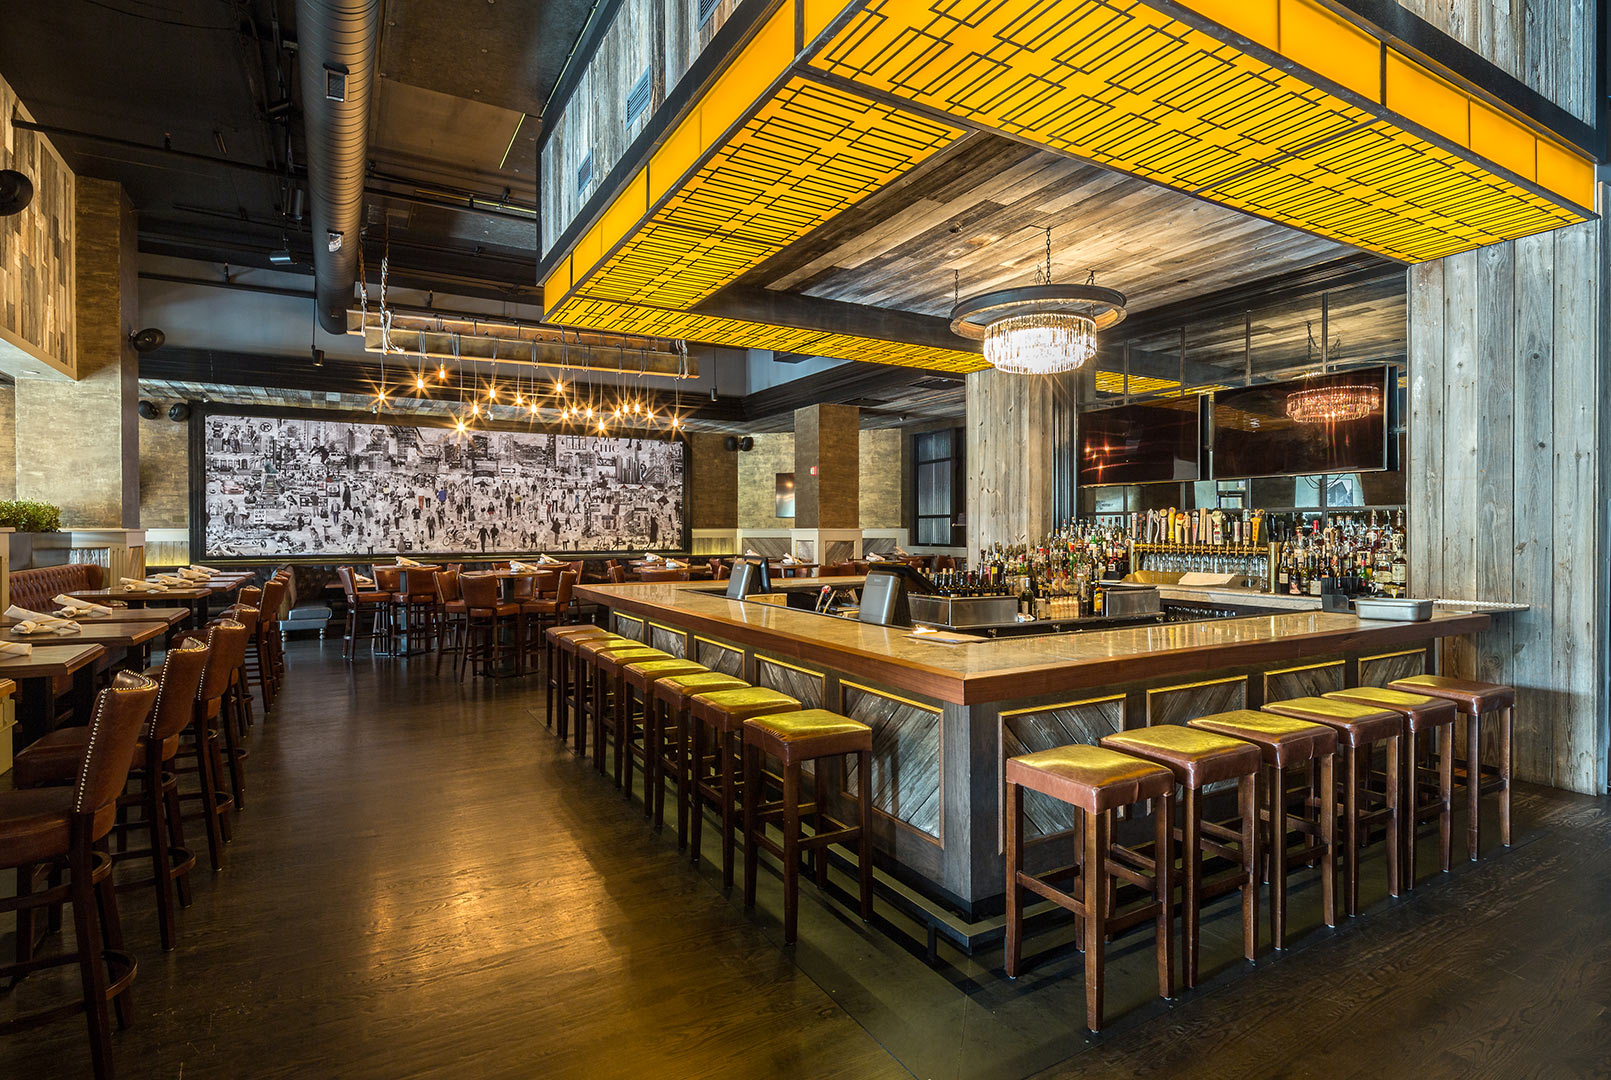 Interior Restaurant Photography Chicago Architecture